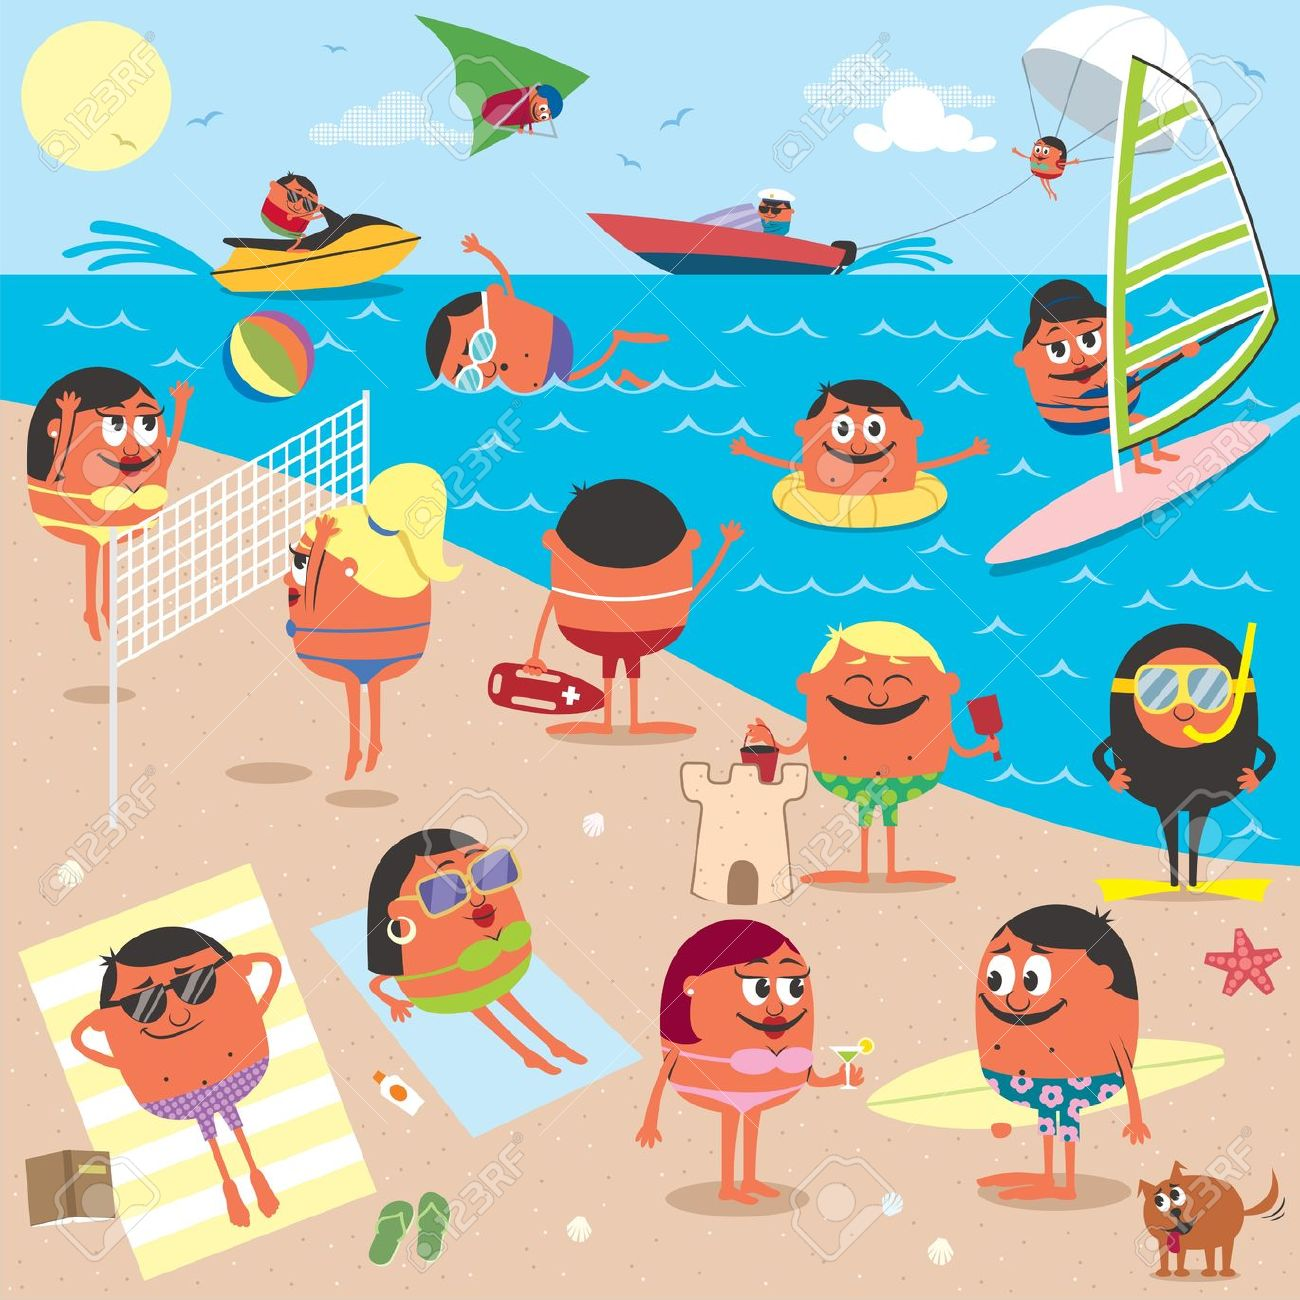 Cartoon Illustration Of Busy Beach. No Transparency And Gradients.